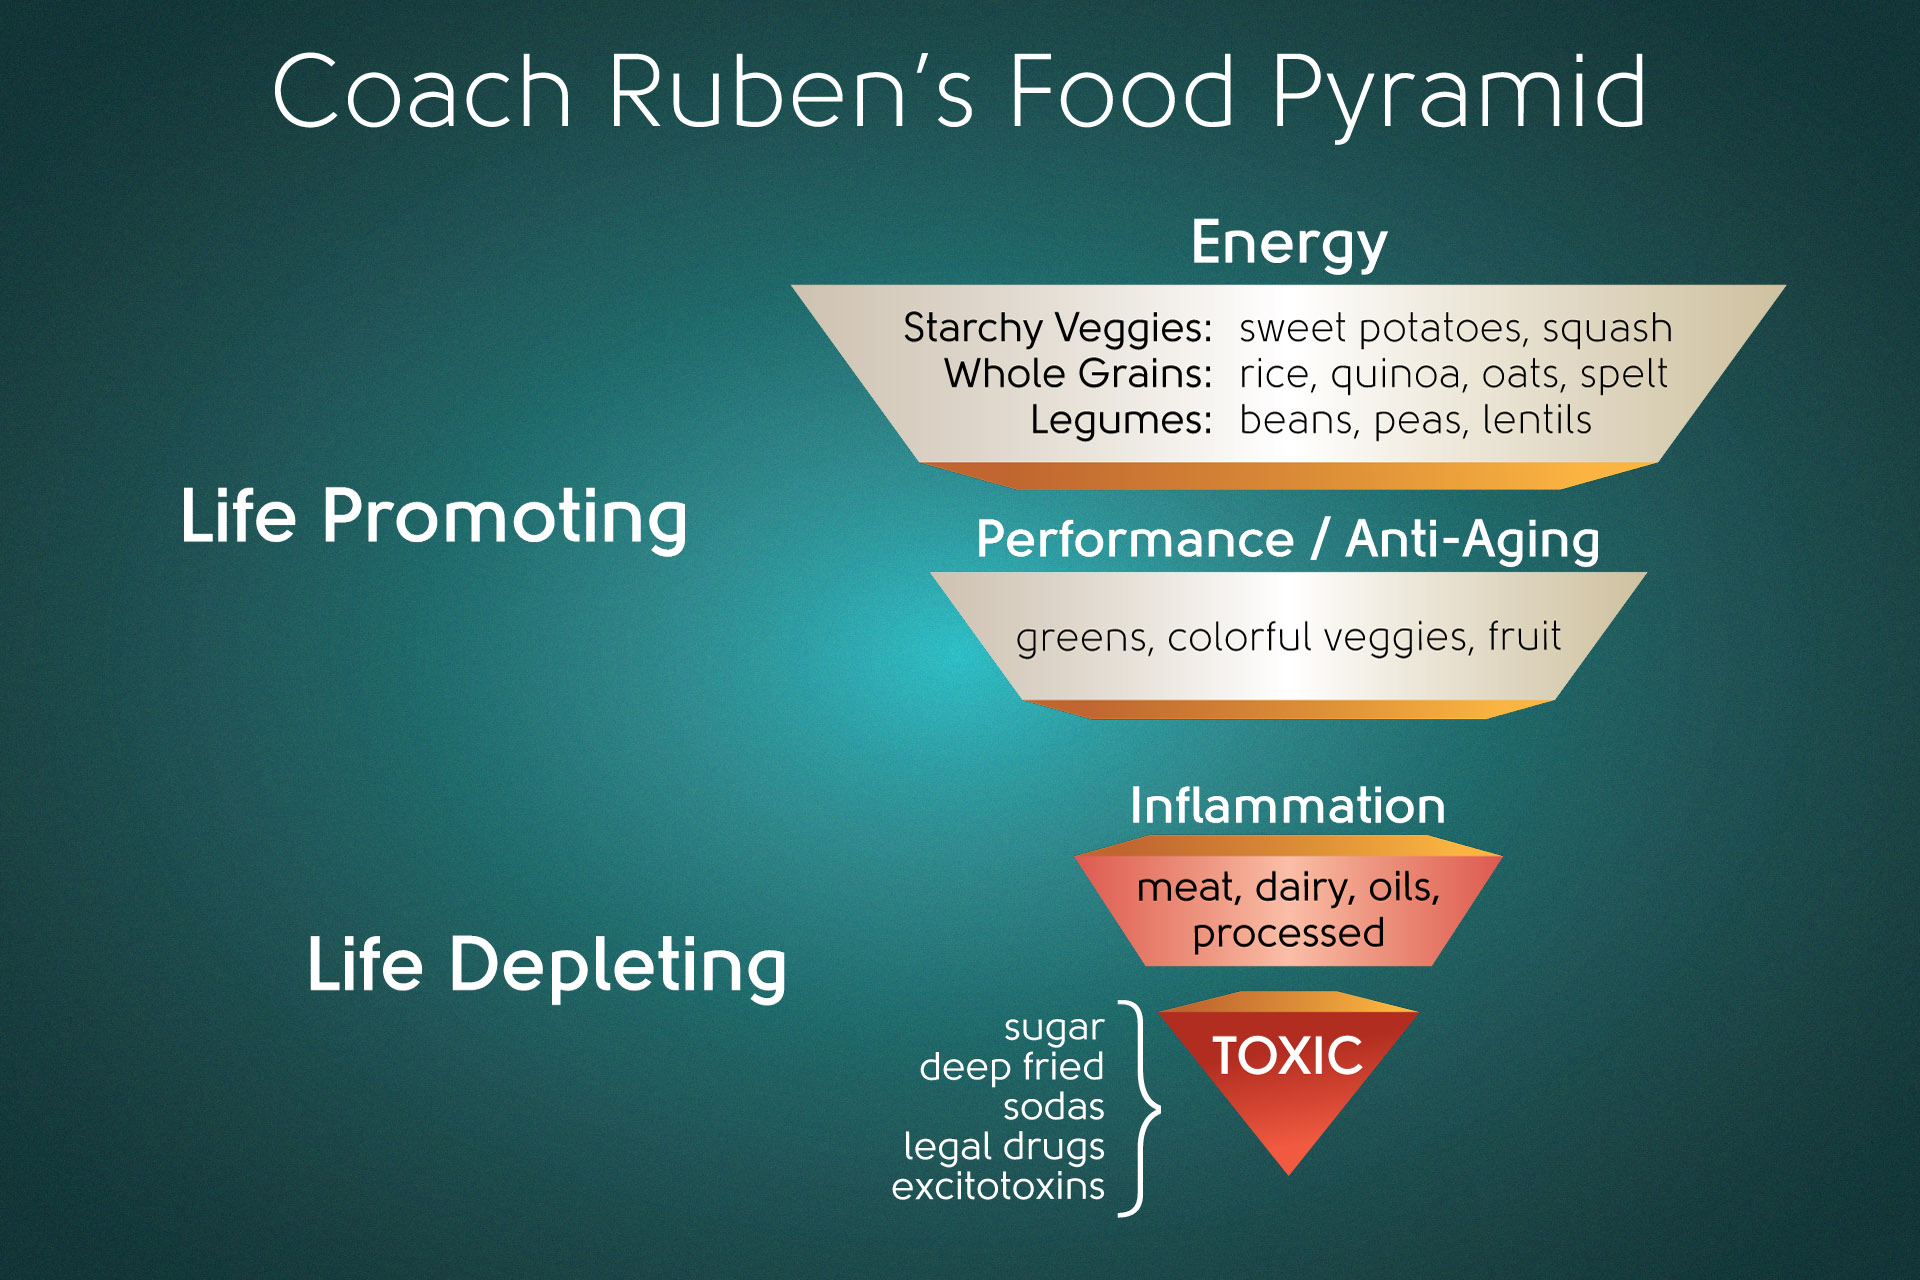 Coach Ruben's Food Pyramid